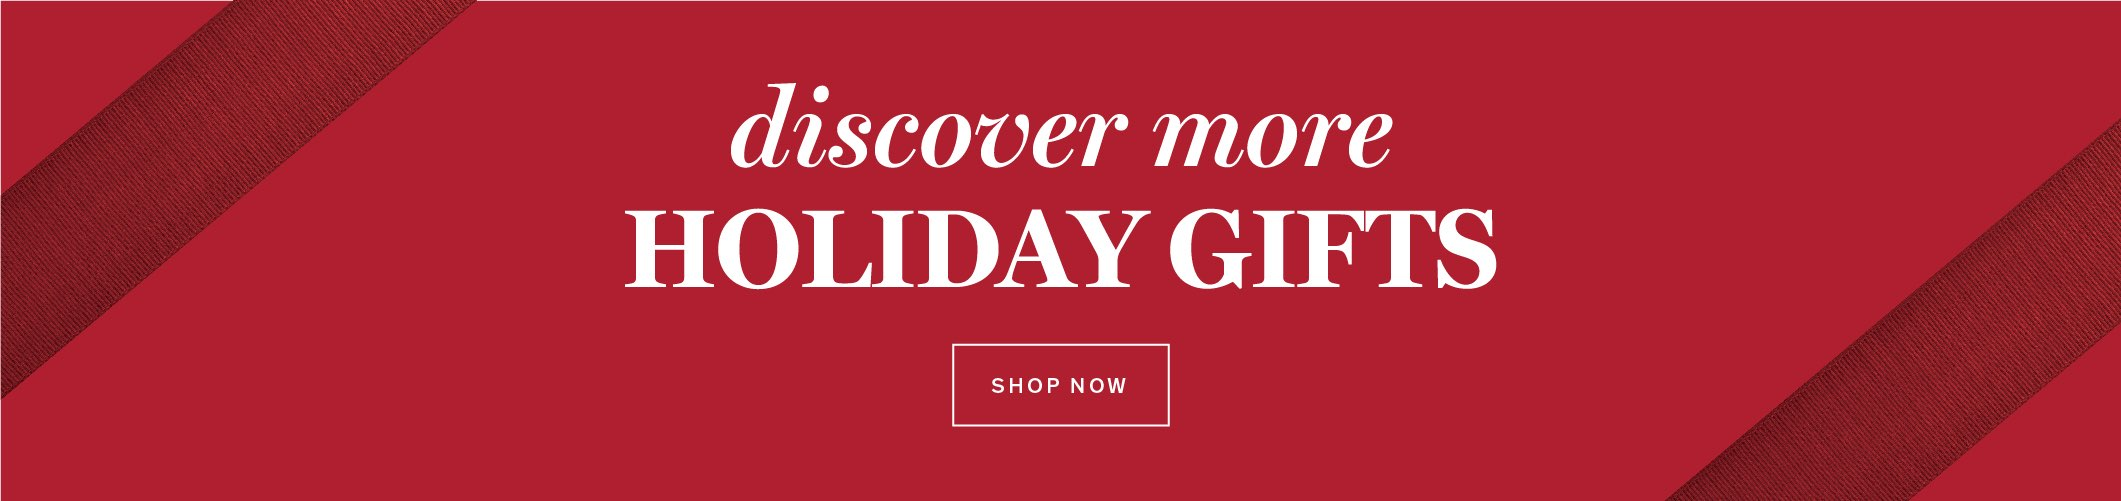 DISCOVER MORE HOLIDAY GIFTS